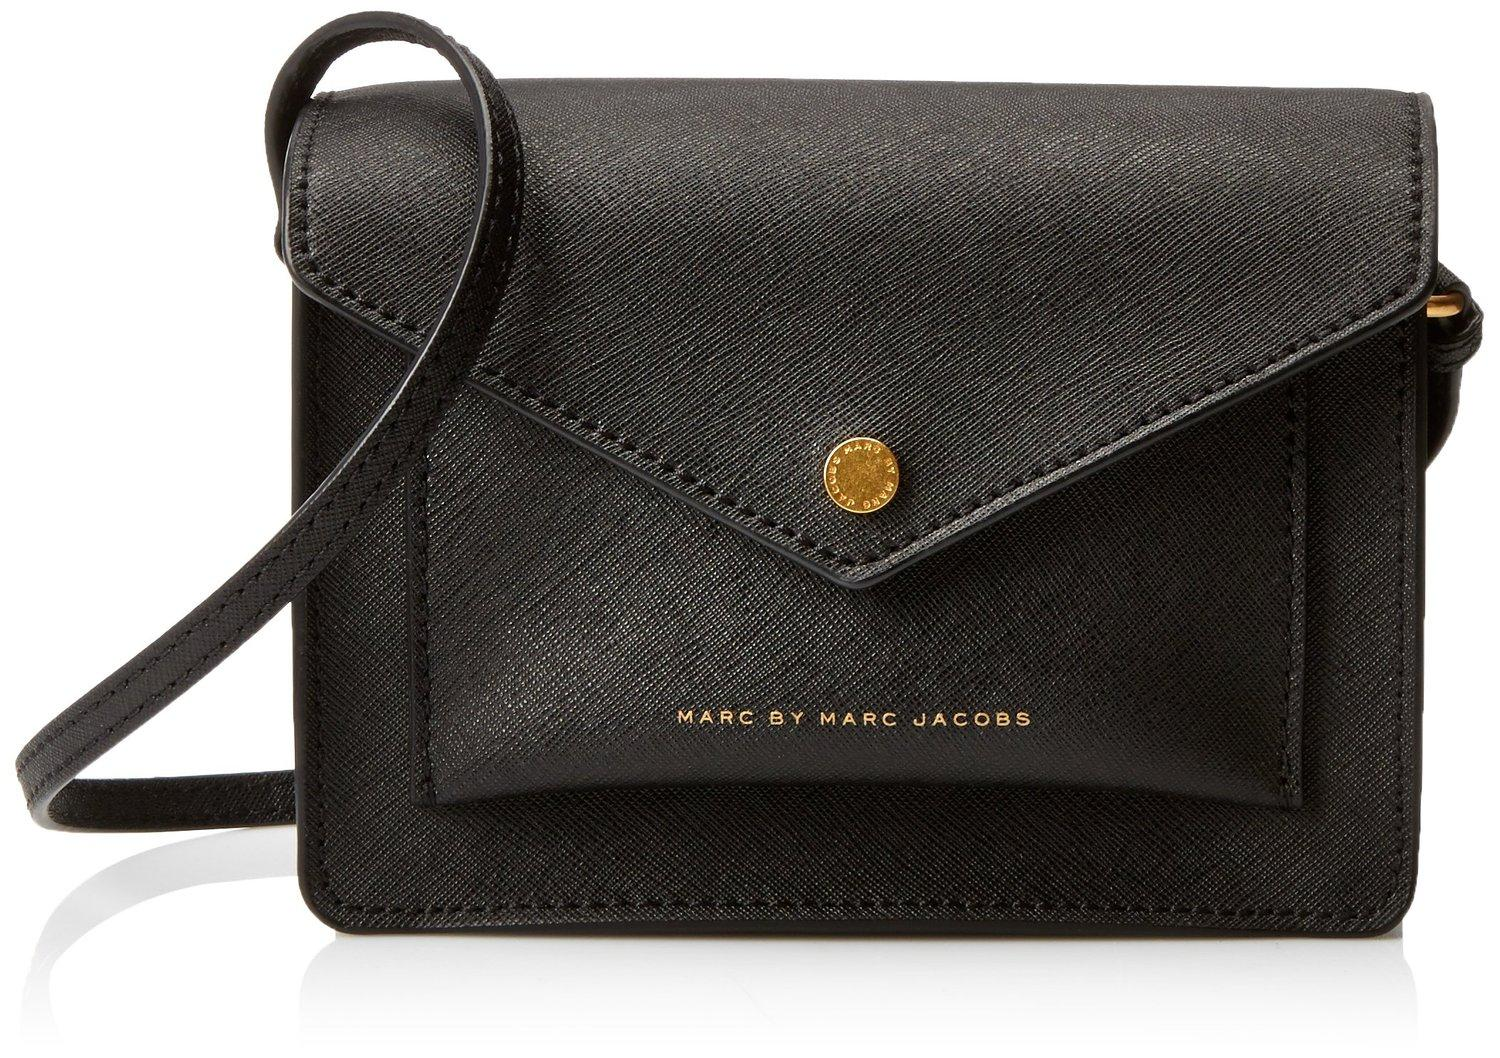 Marc by Marc Jacobs Metropoli Cross-Body Bag